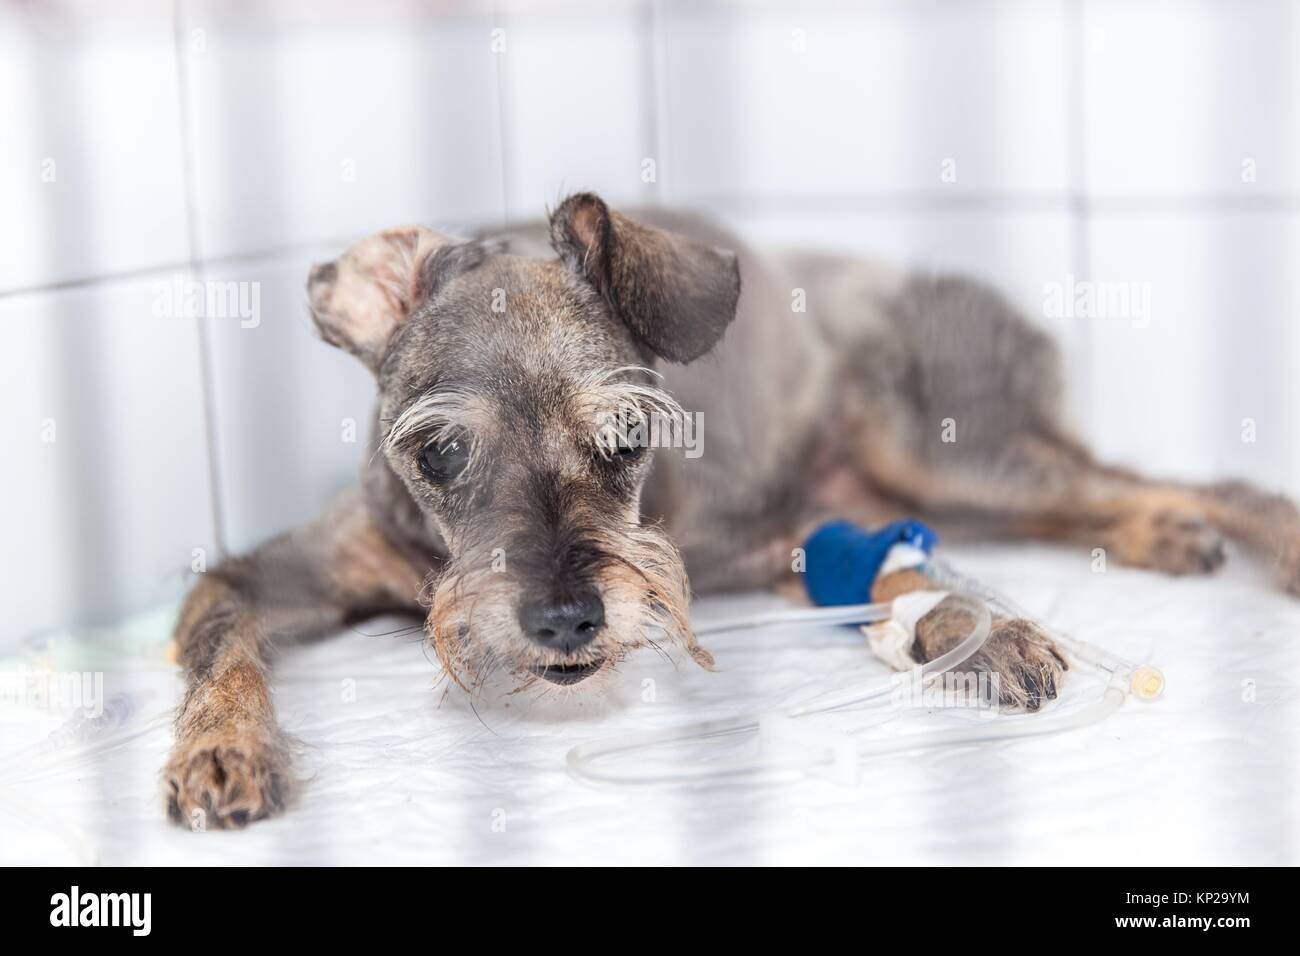 dog at the vet´s undergoing a medical treatment - Stock Image